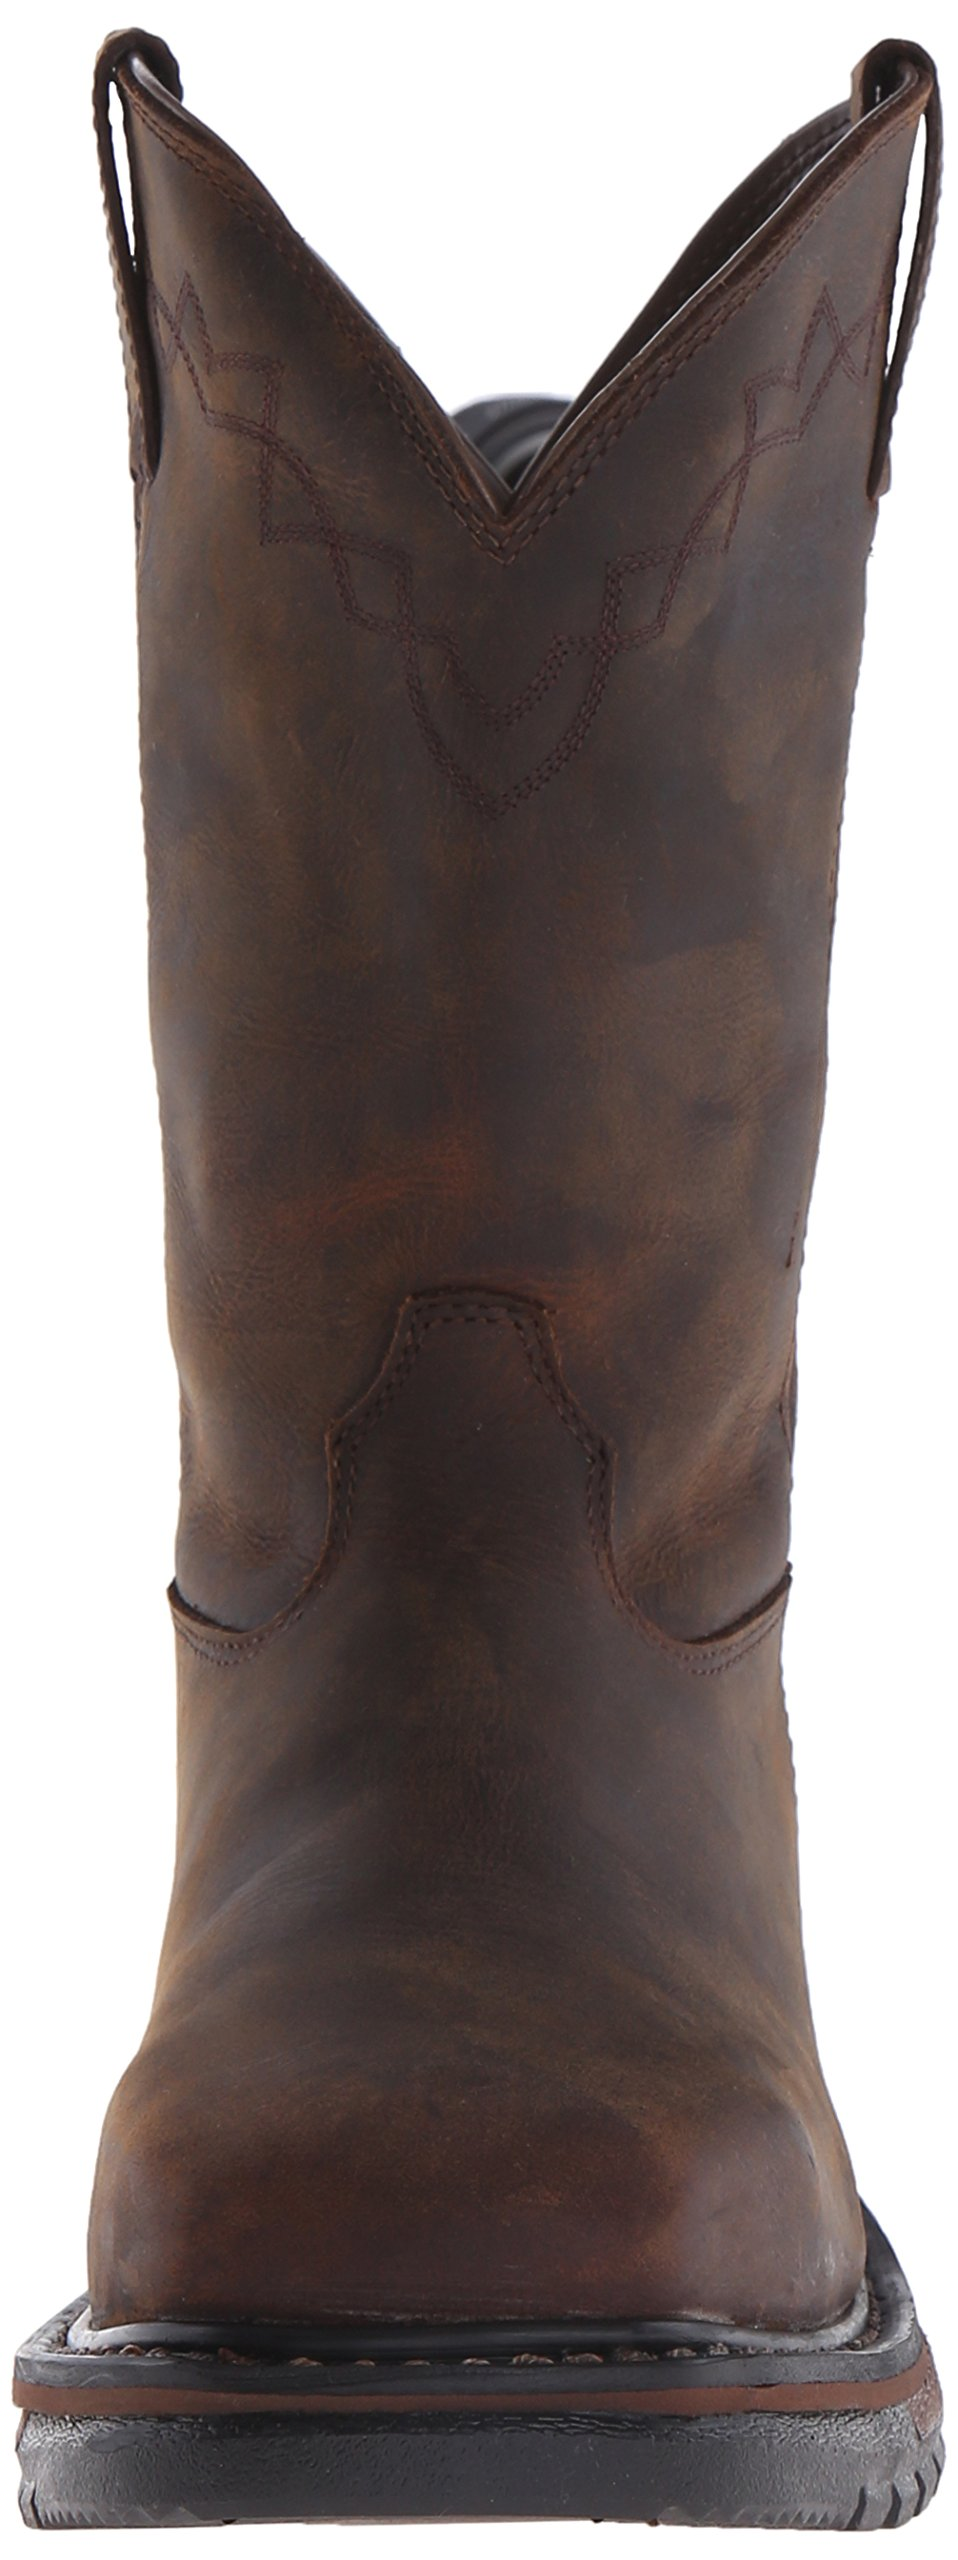 Rocky Men's RKW0117 Boot, Dark Brown, 10 M US by Rocky (Image #4)